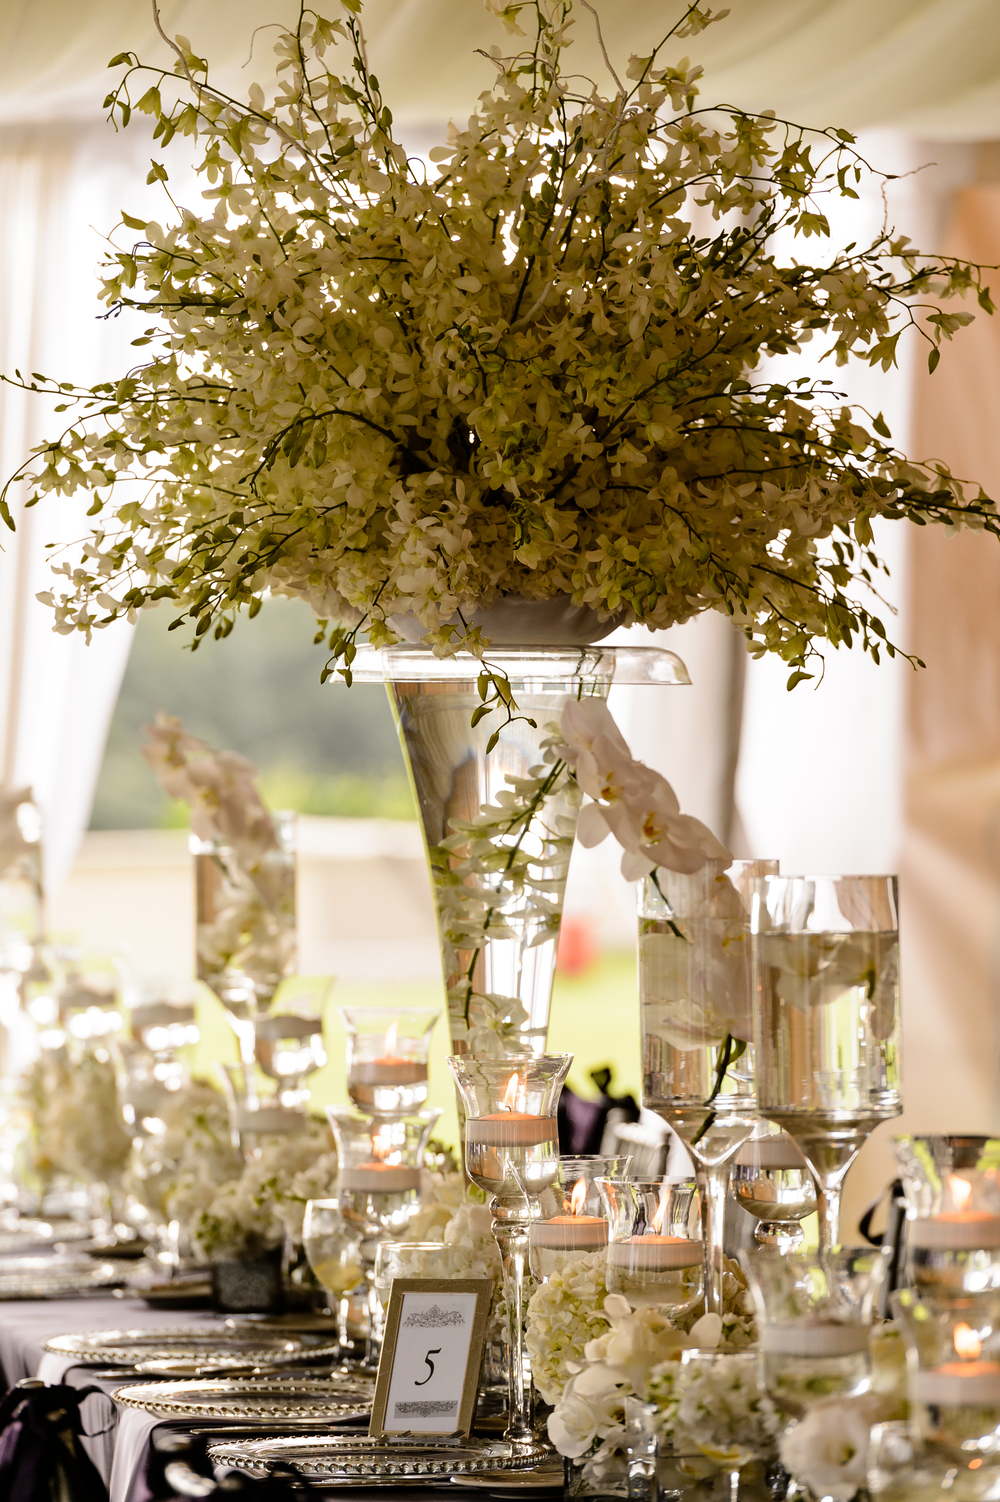 Grand Centerpieces of white orchids, multiple heights of candles, goblets with floating candles, white grouping of flowers, all different and giving texture to the feasting tables.